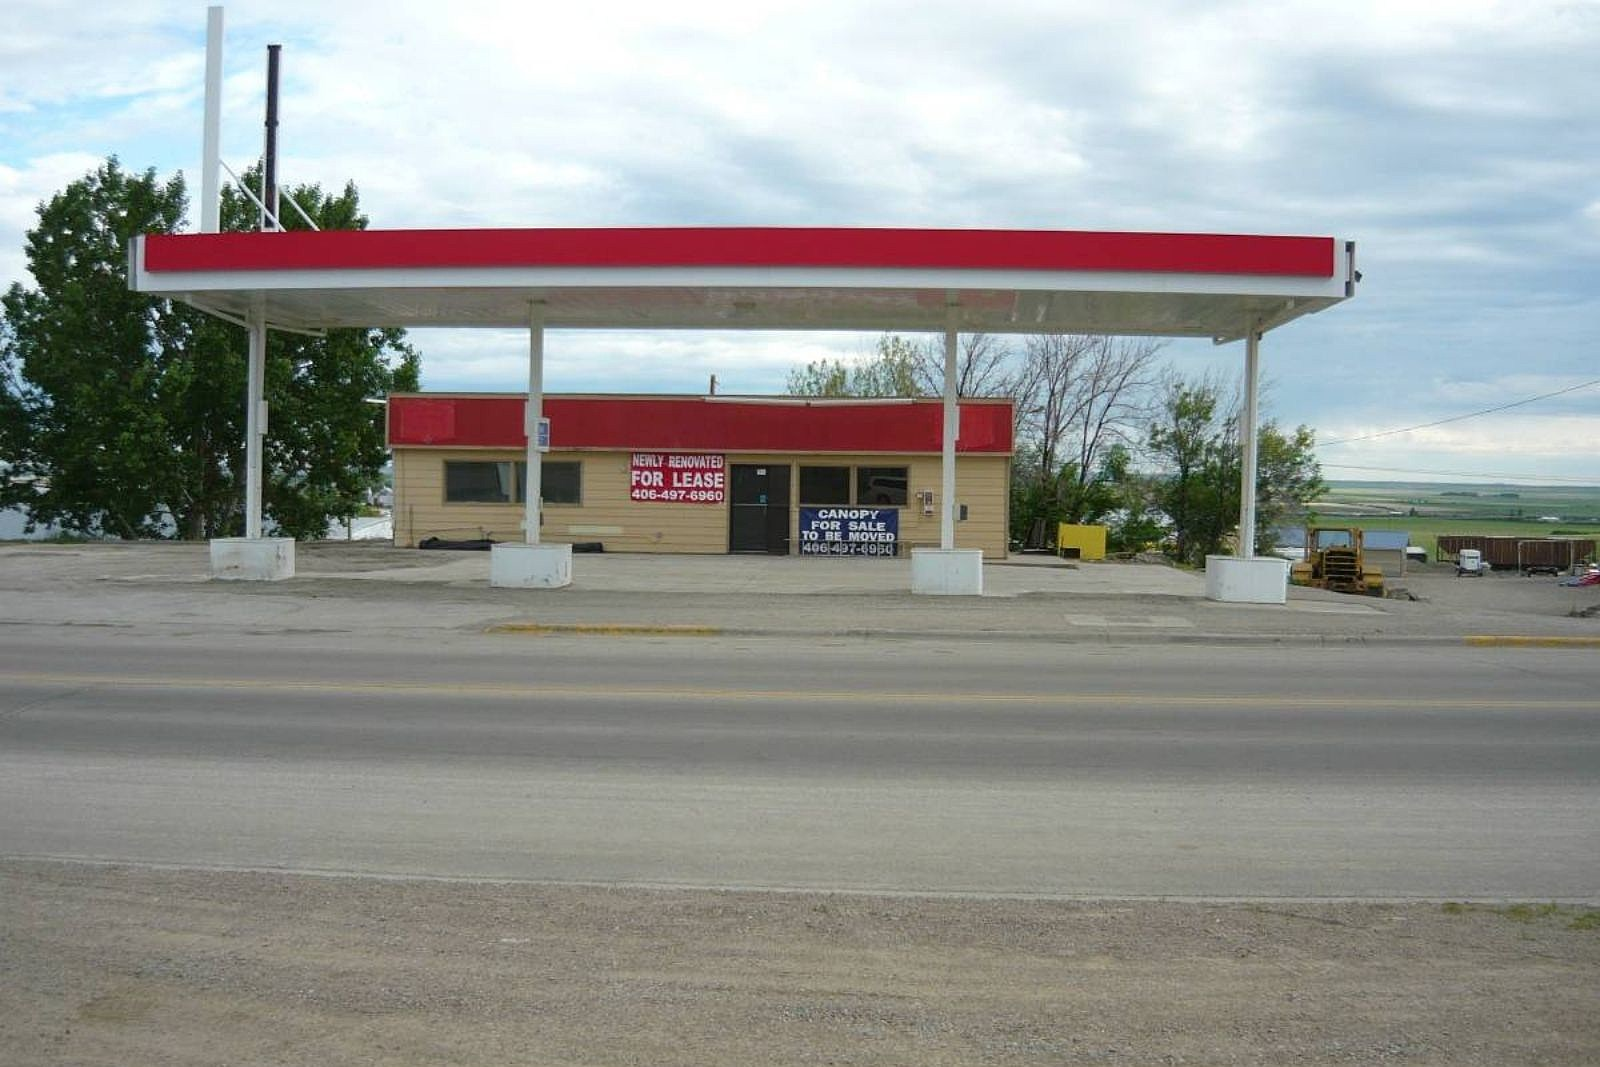 Craigslist Freebie An Entire Gas Station Canopy In Montana